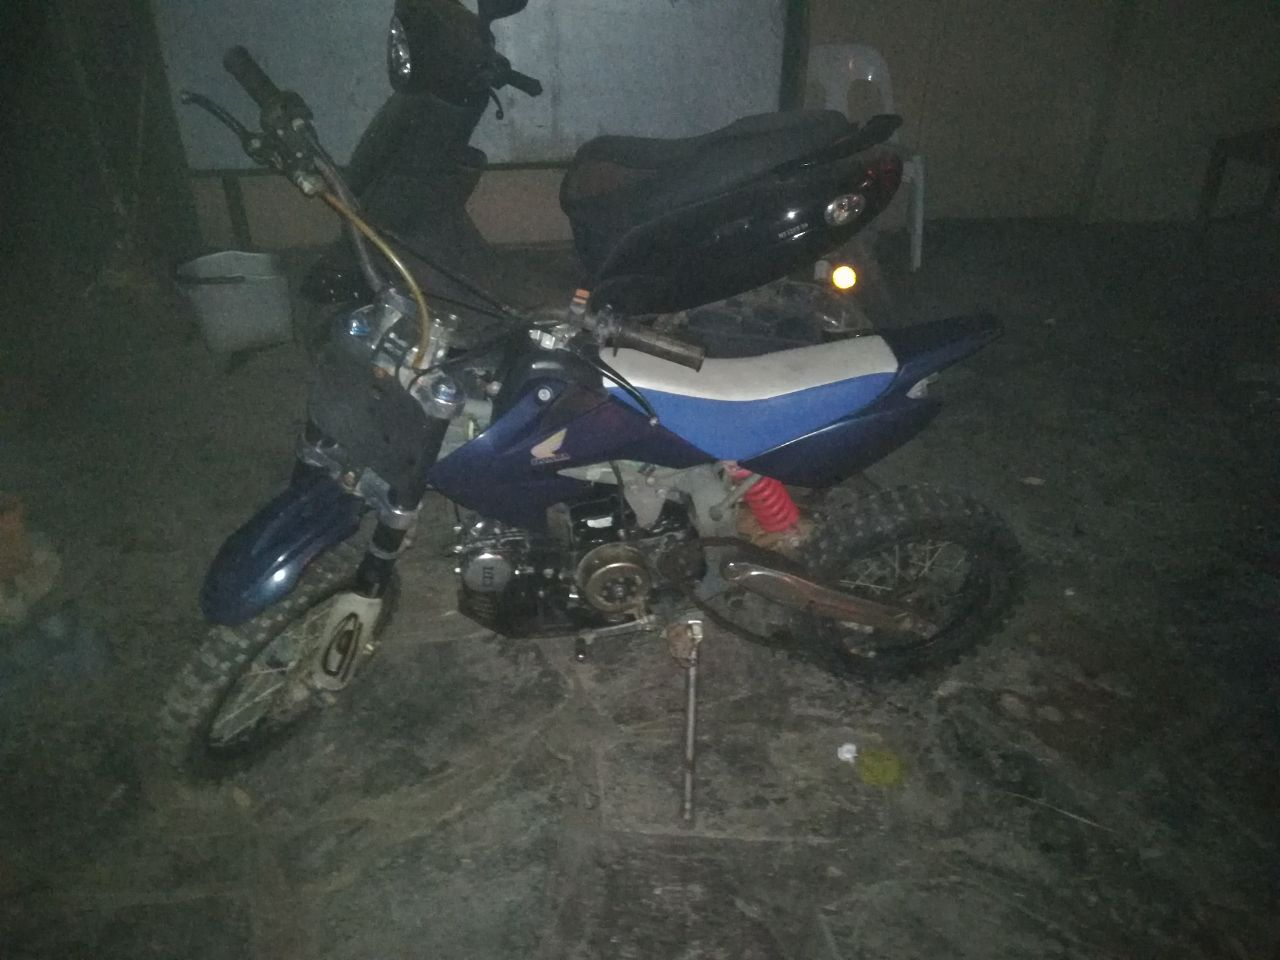 2003 Other Other (Trikes)